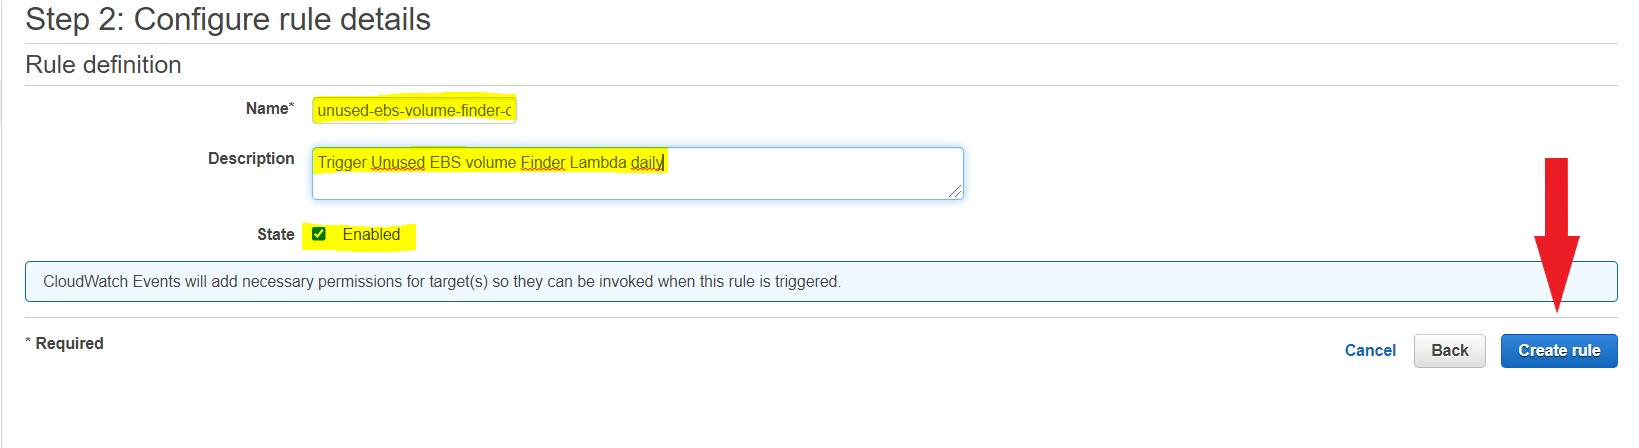 Unused ebs volumes create and enable CloudWatch Events rule